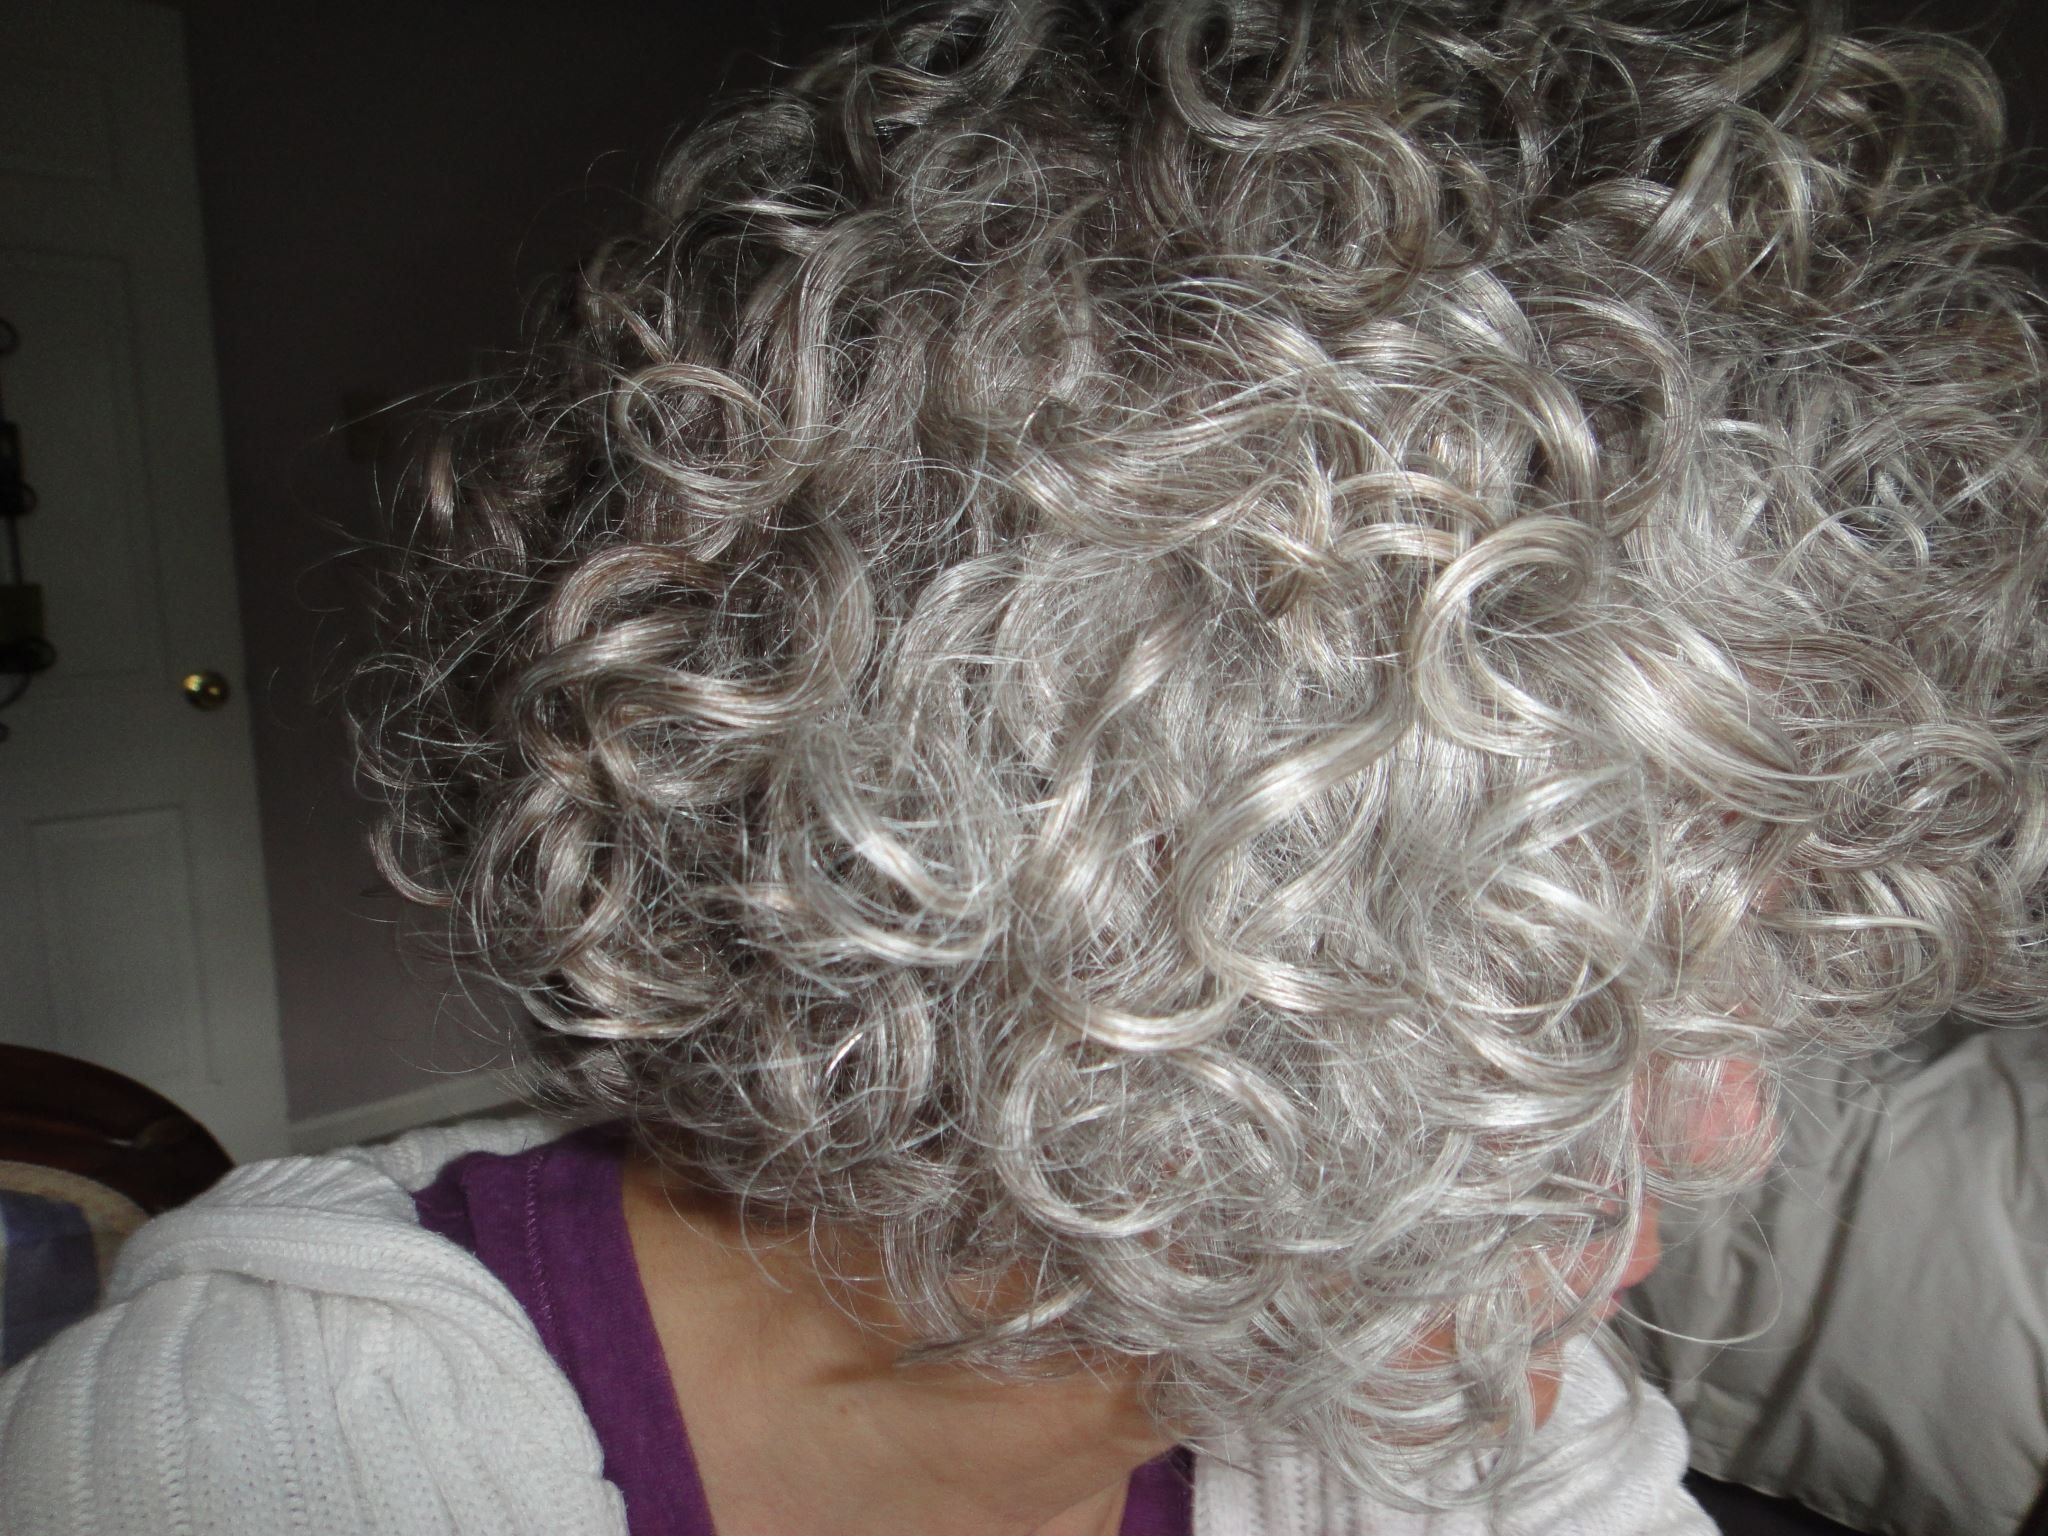 Pin By Mechelle Warburton On Short Curly Hair Grey Curly Hair Hair Styles Silver Grey Hair